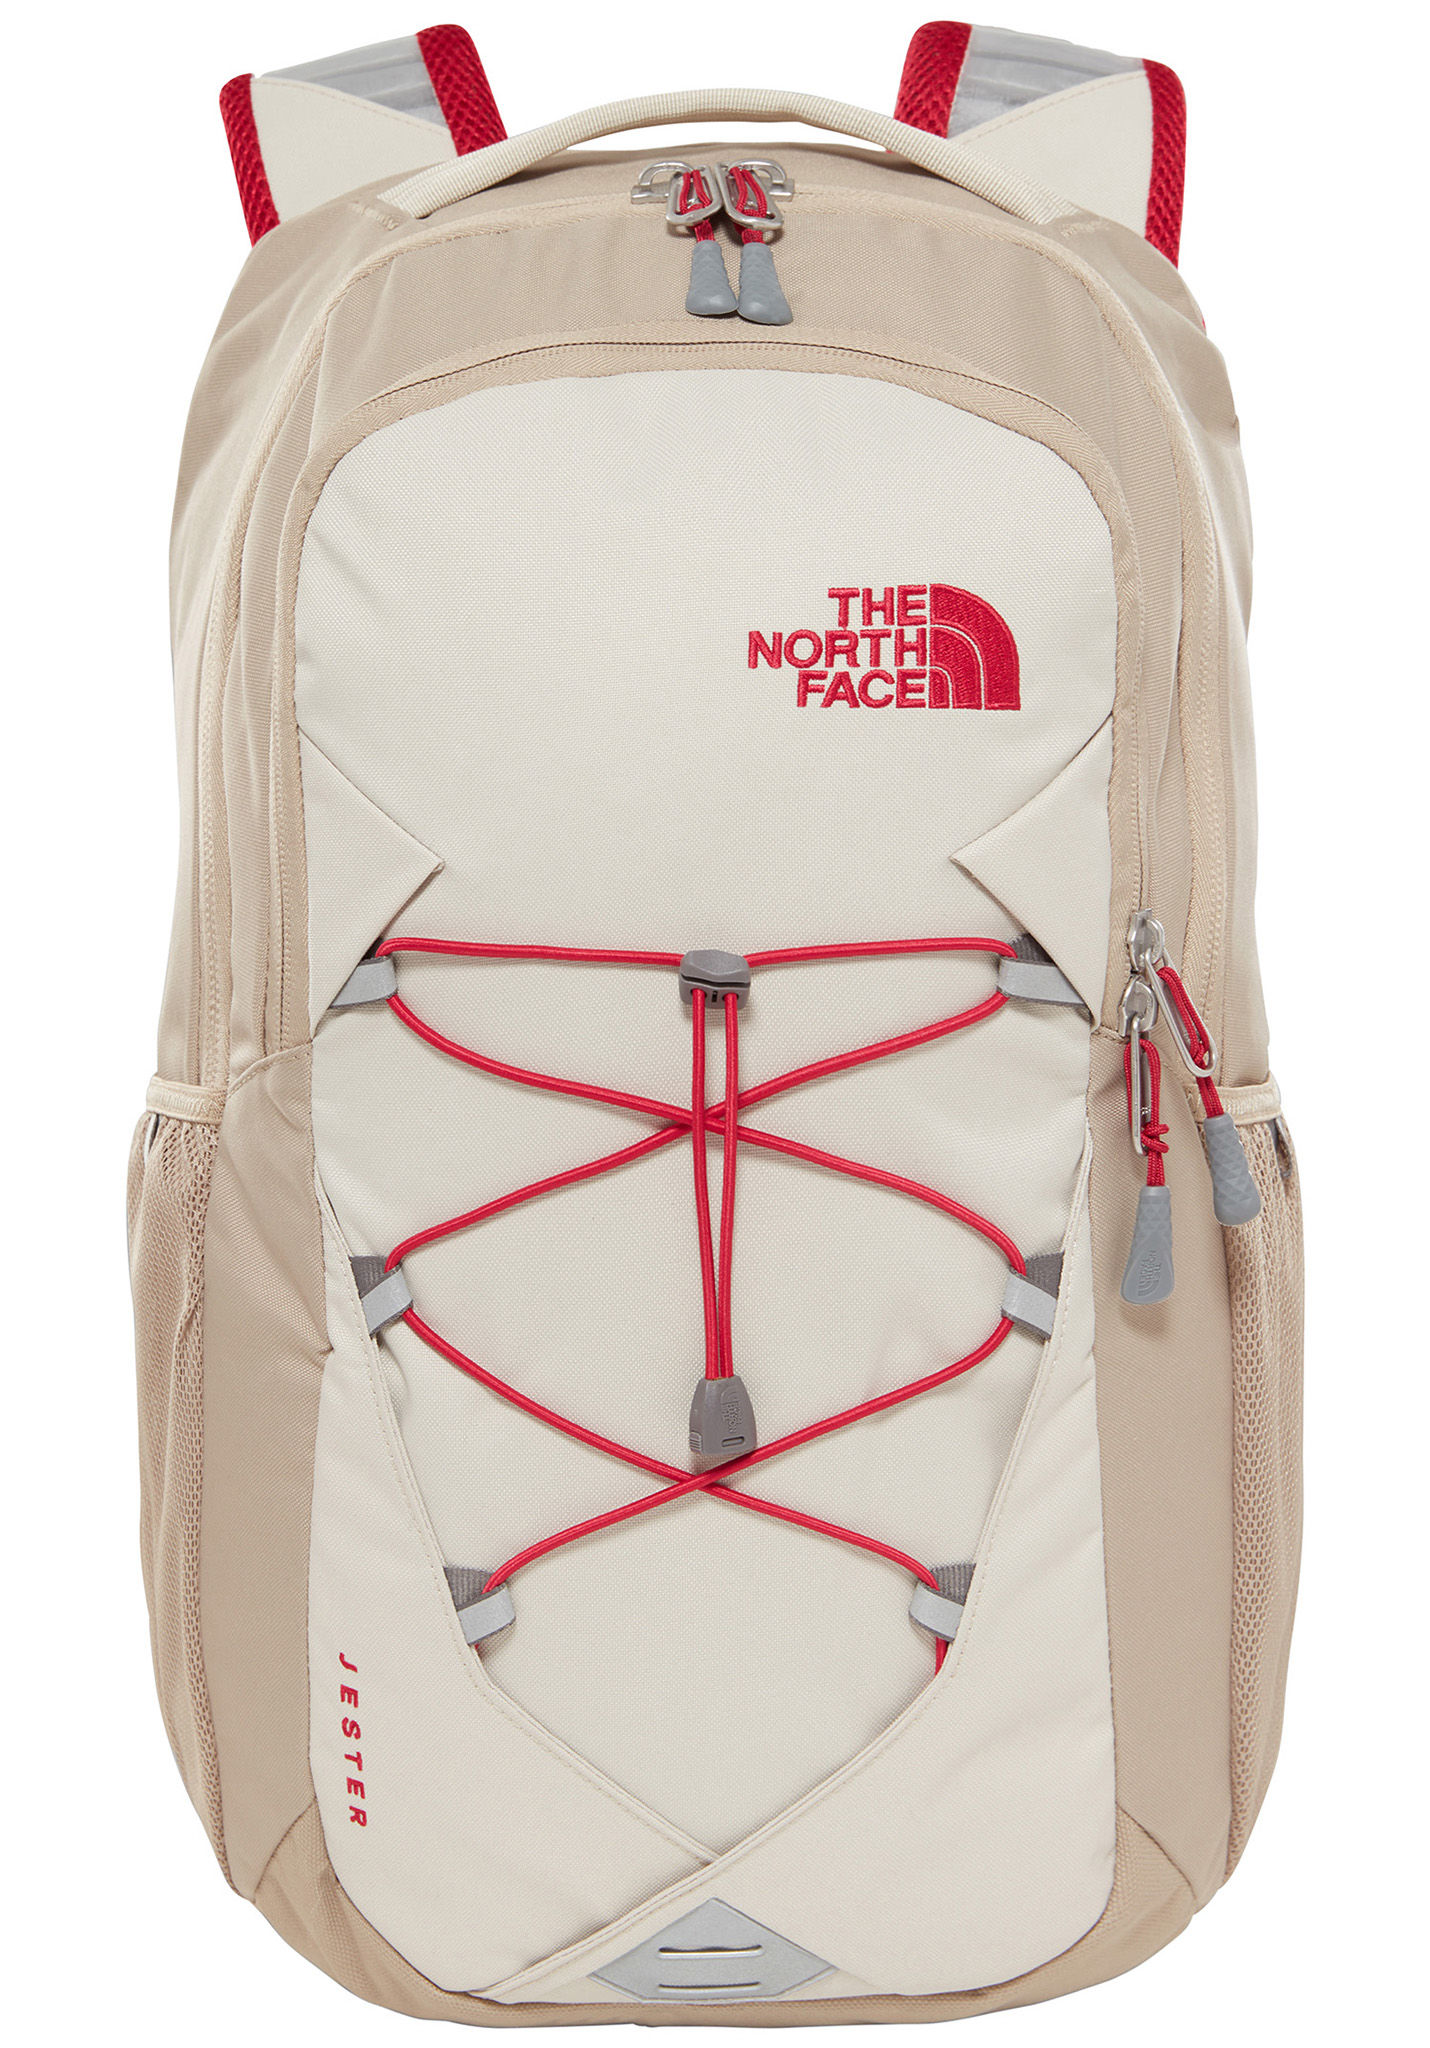 4b6bc9f550f THE NORTH FACE Jester 29L - Backpack for Women - Beige - Planet Sports